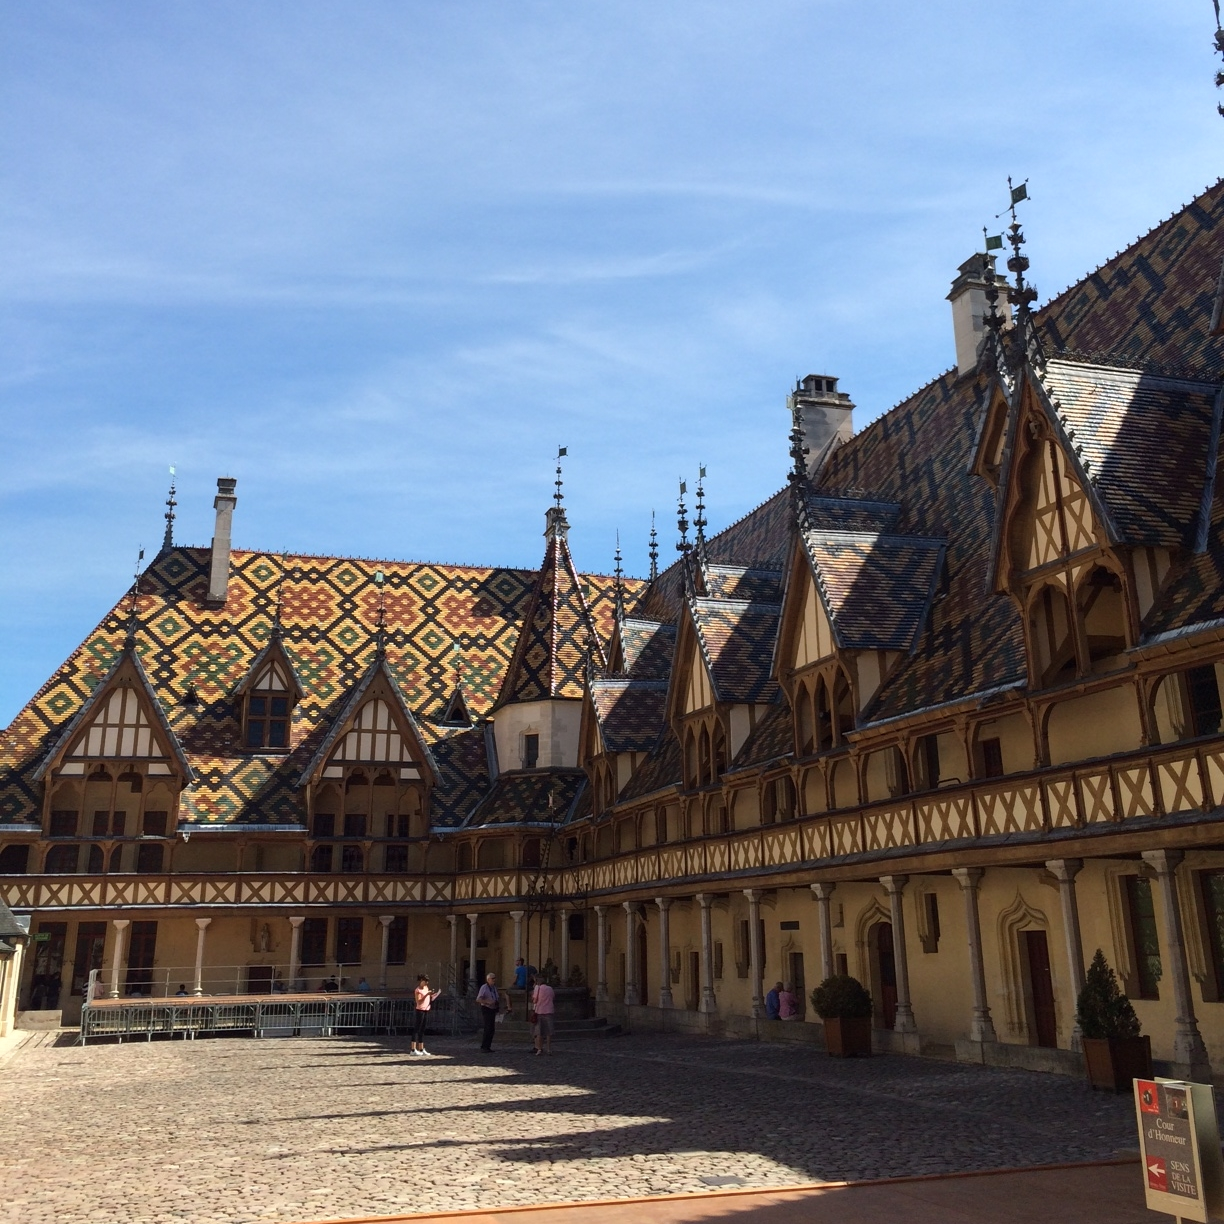 The historic Hospice de Beaune